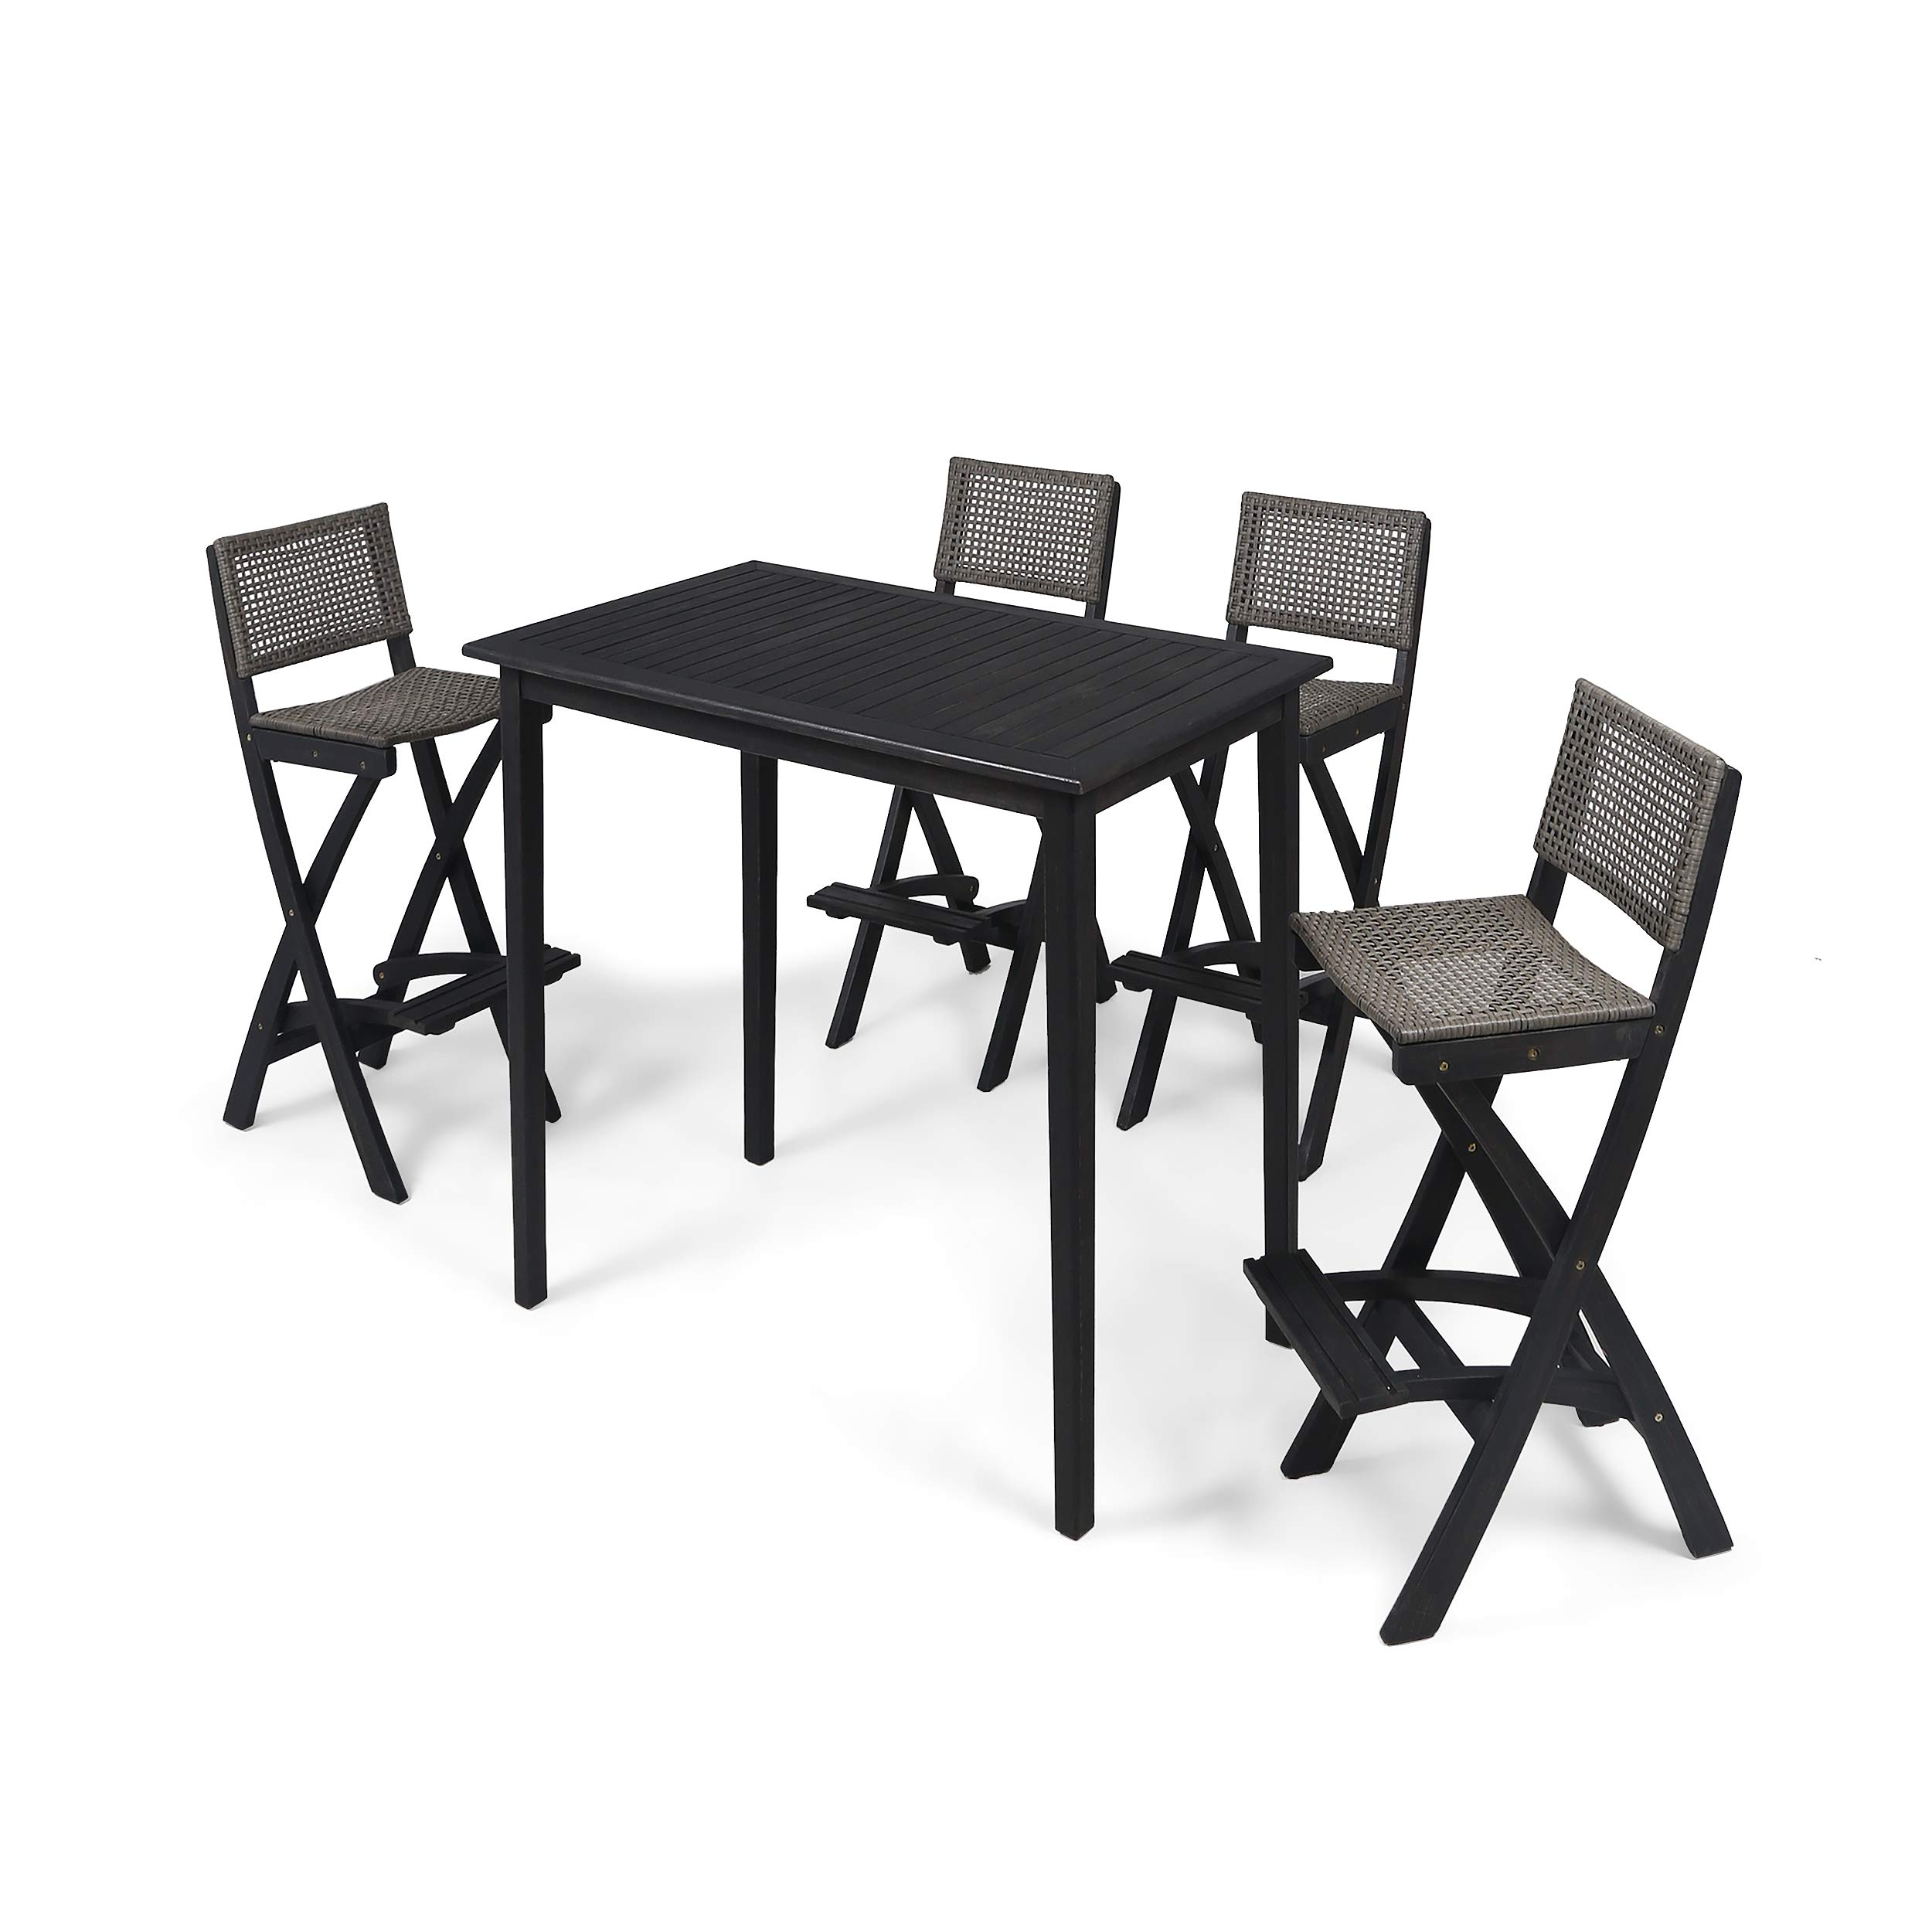 Great Deal Furniture Elizabeth Outdoor 45'' Rectangular 5 Piece Wood and Wicker Bar Height Set, Dark Gray Finish and Brown